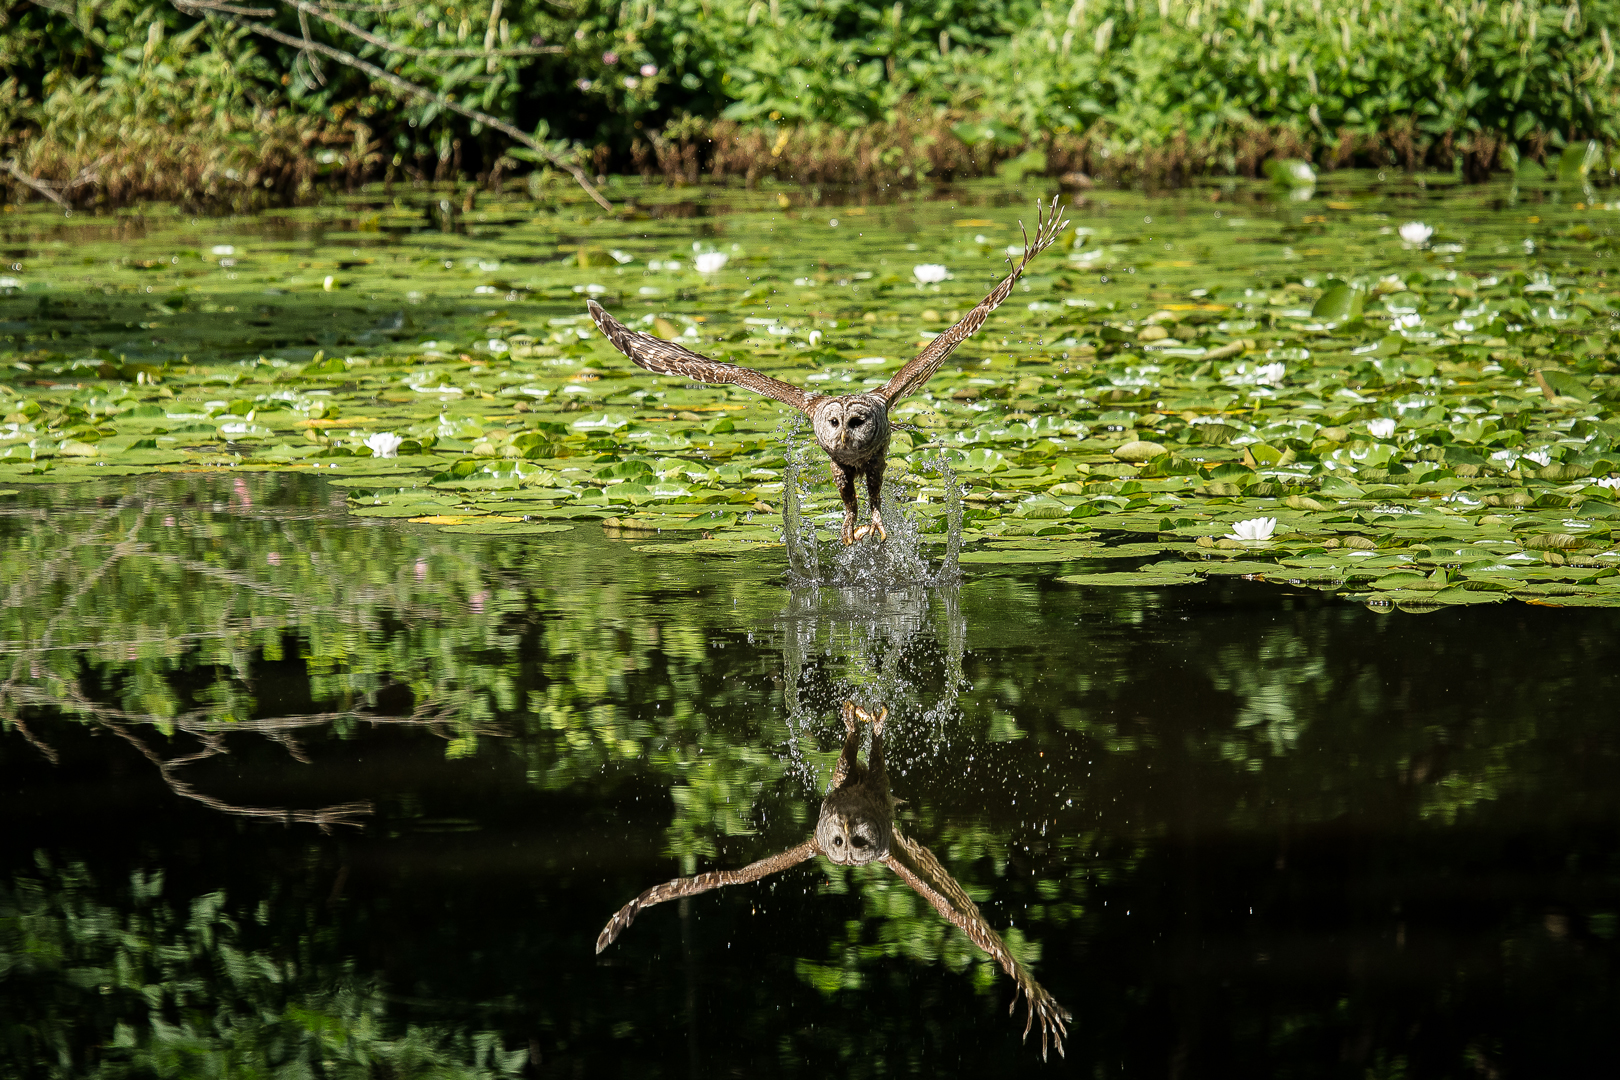 Barred owl swoops to surface of Ashton Pond while fishing at Blacklick Woods.